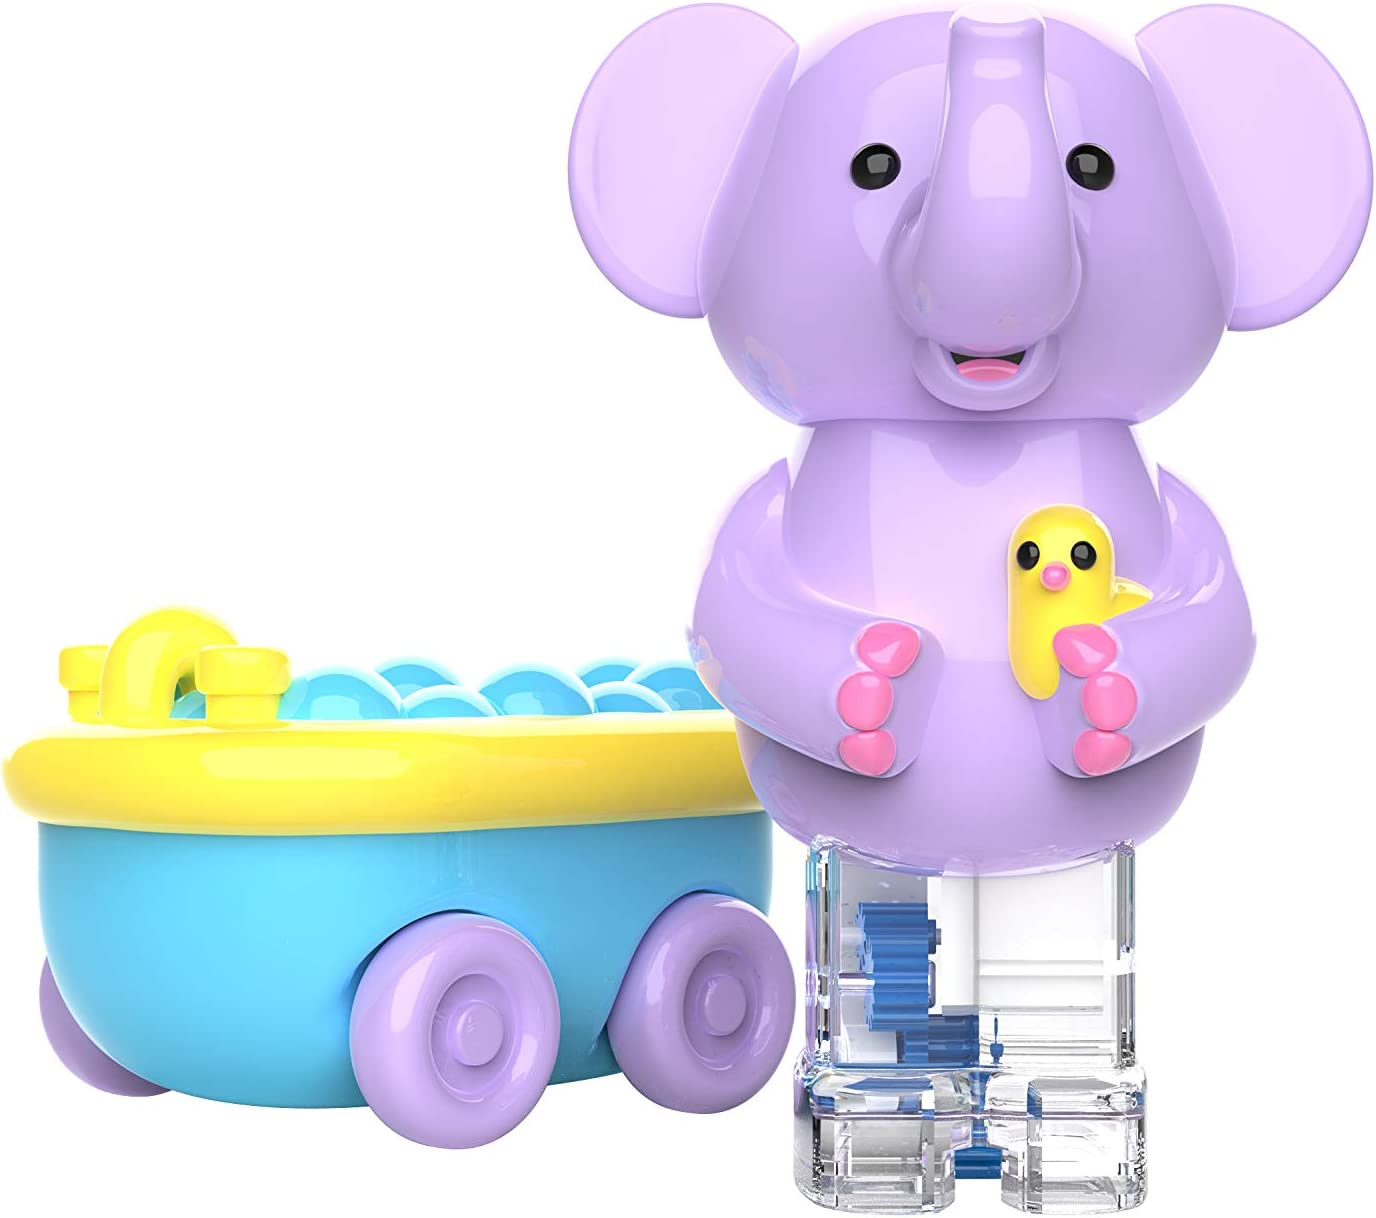 Educational Insights Zoomigos Elephant with Bath Tub Zoomer - Toddler Toy